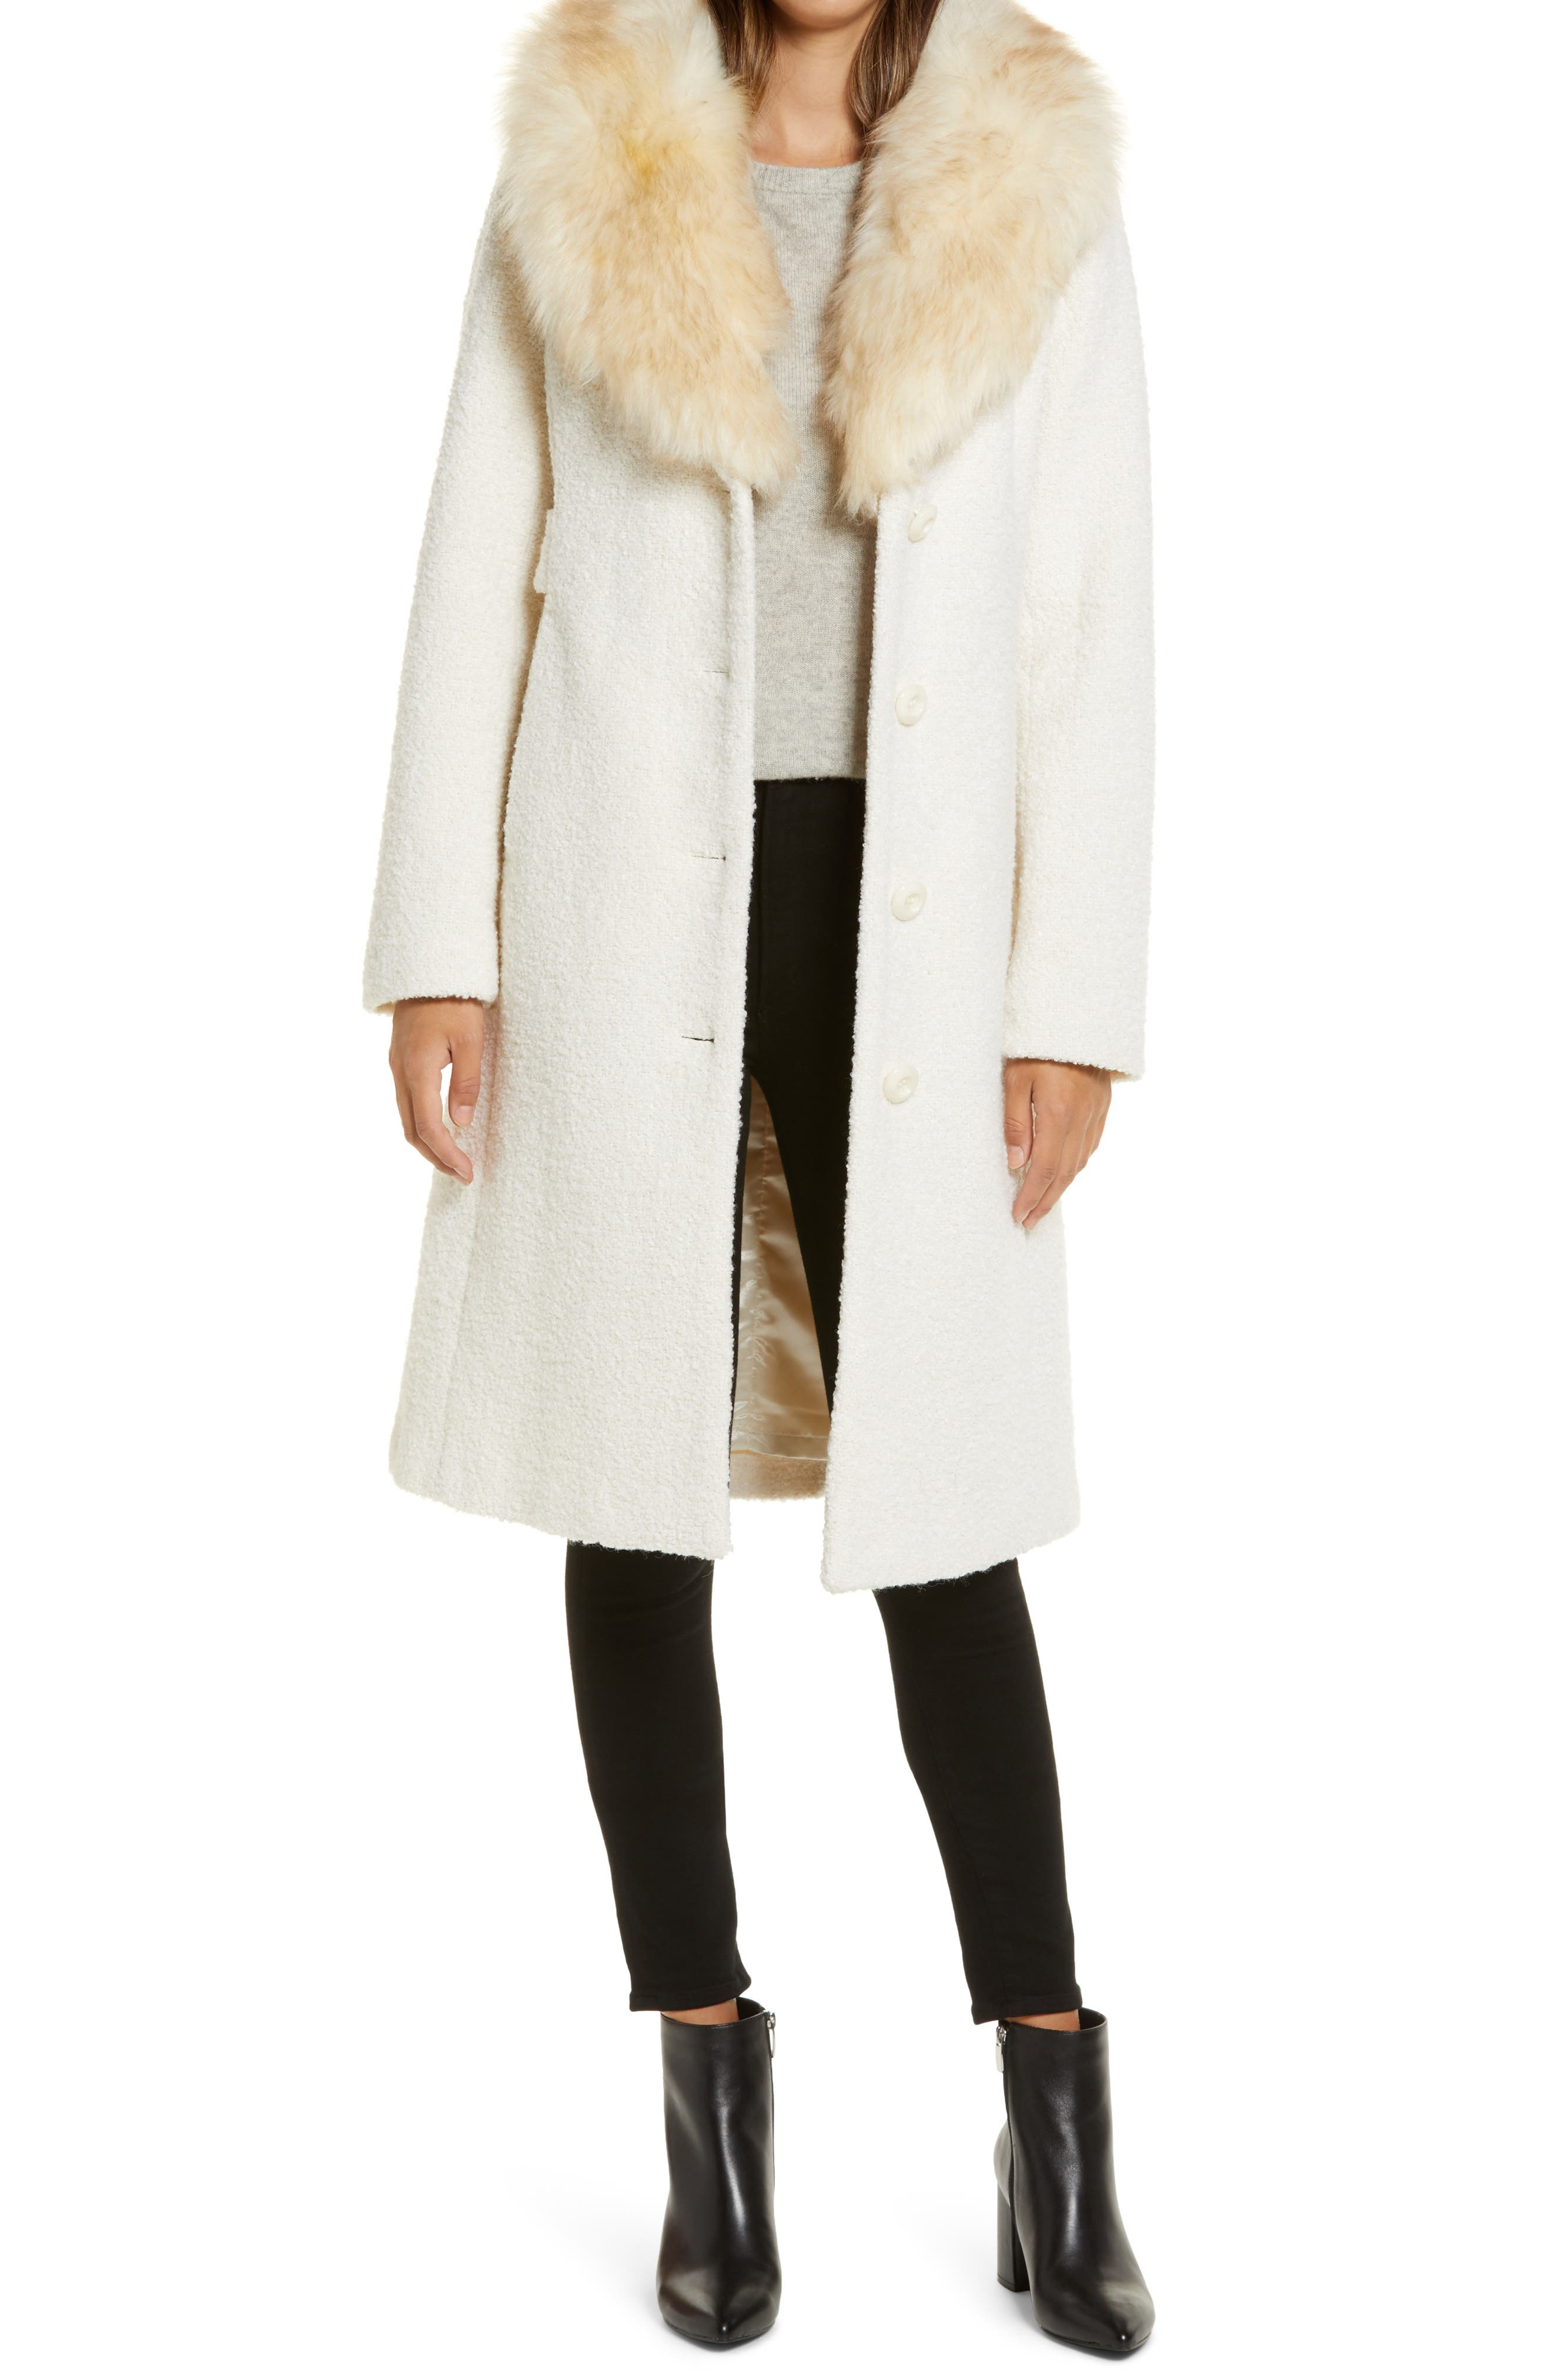 Shop Queen's Gambit Outfits – 60s Clothes Womens Gallery Wool Blend Coat With Removable Faux Fur Collar Size X-Large - Ivory $174.90 AT vintagedancer.com